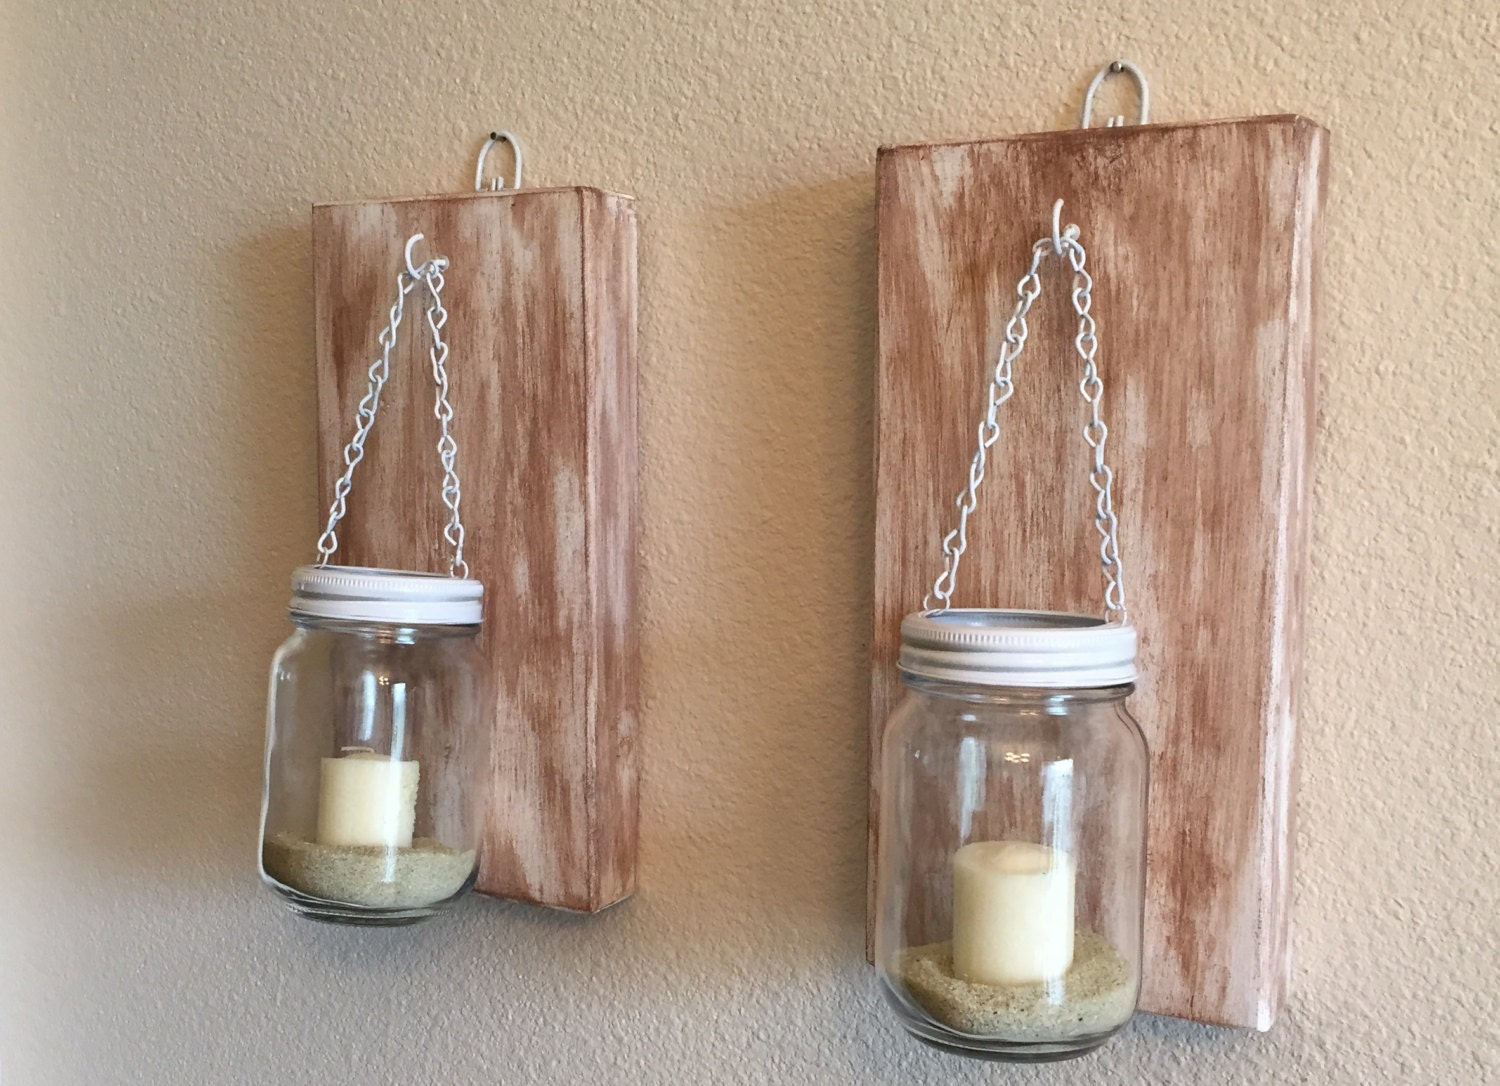 Set of 2 Rustic Mason Jar Wall Sconce Candle Sconces by NARSCH